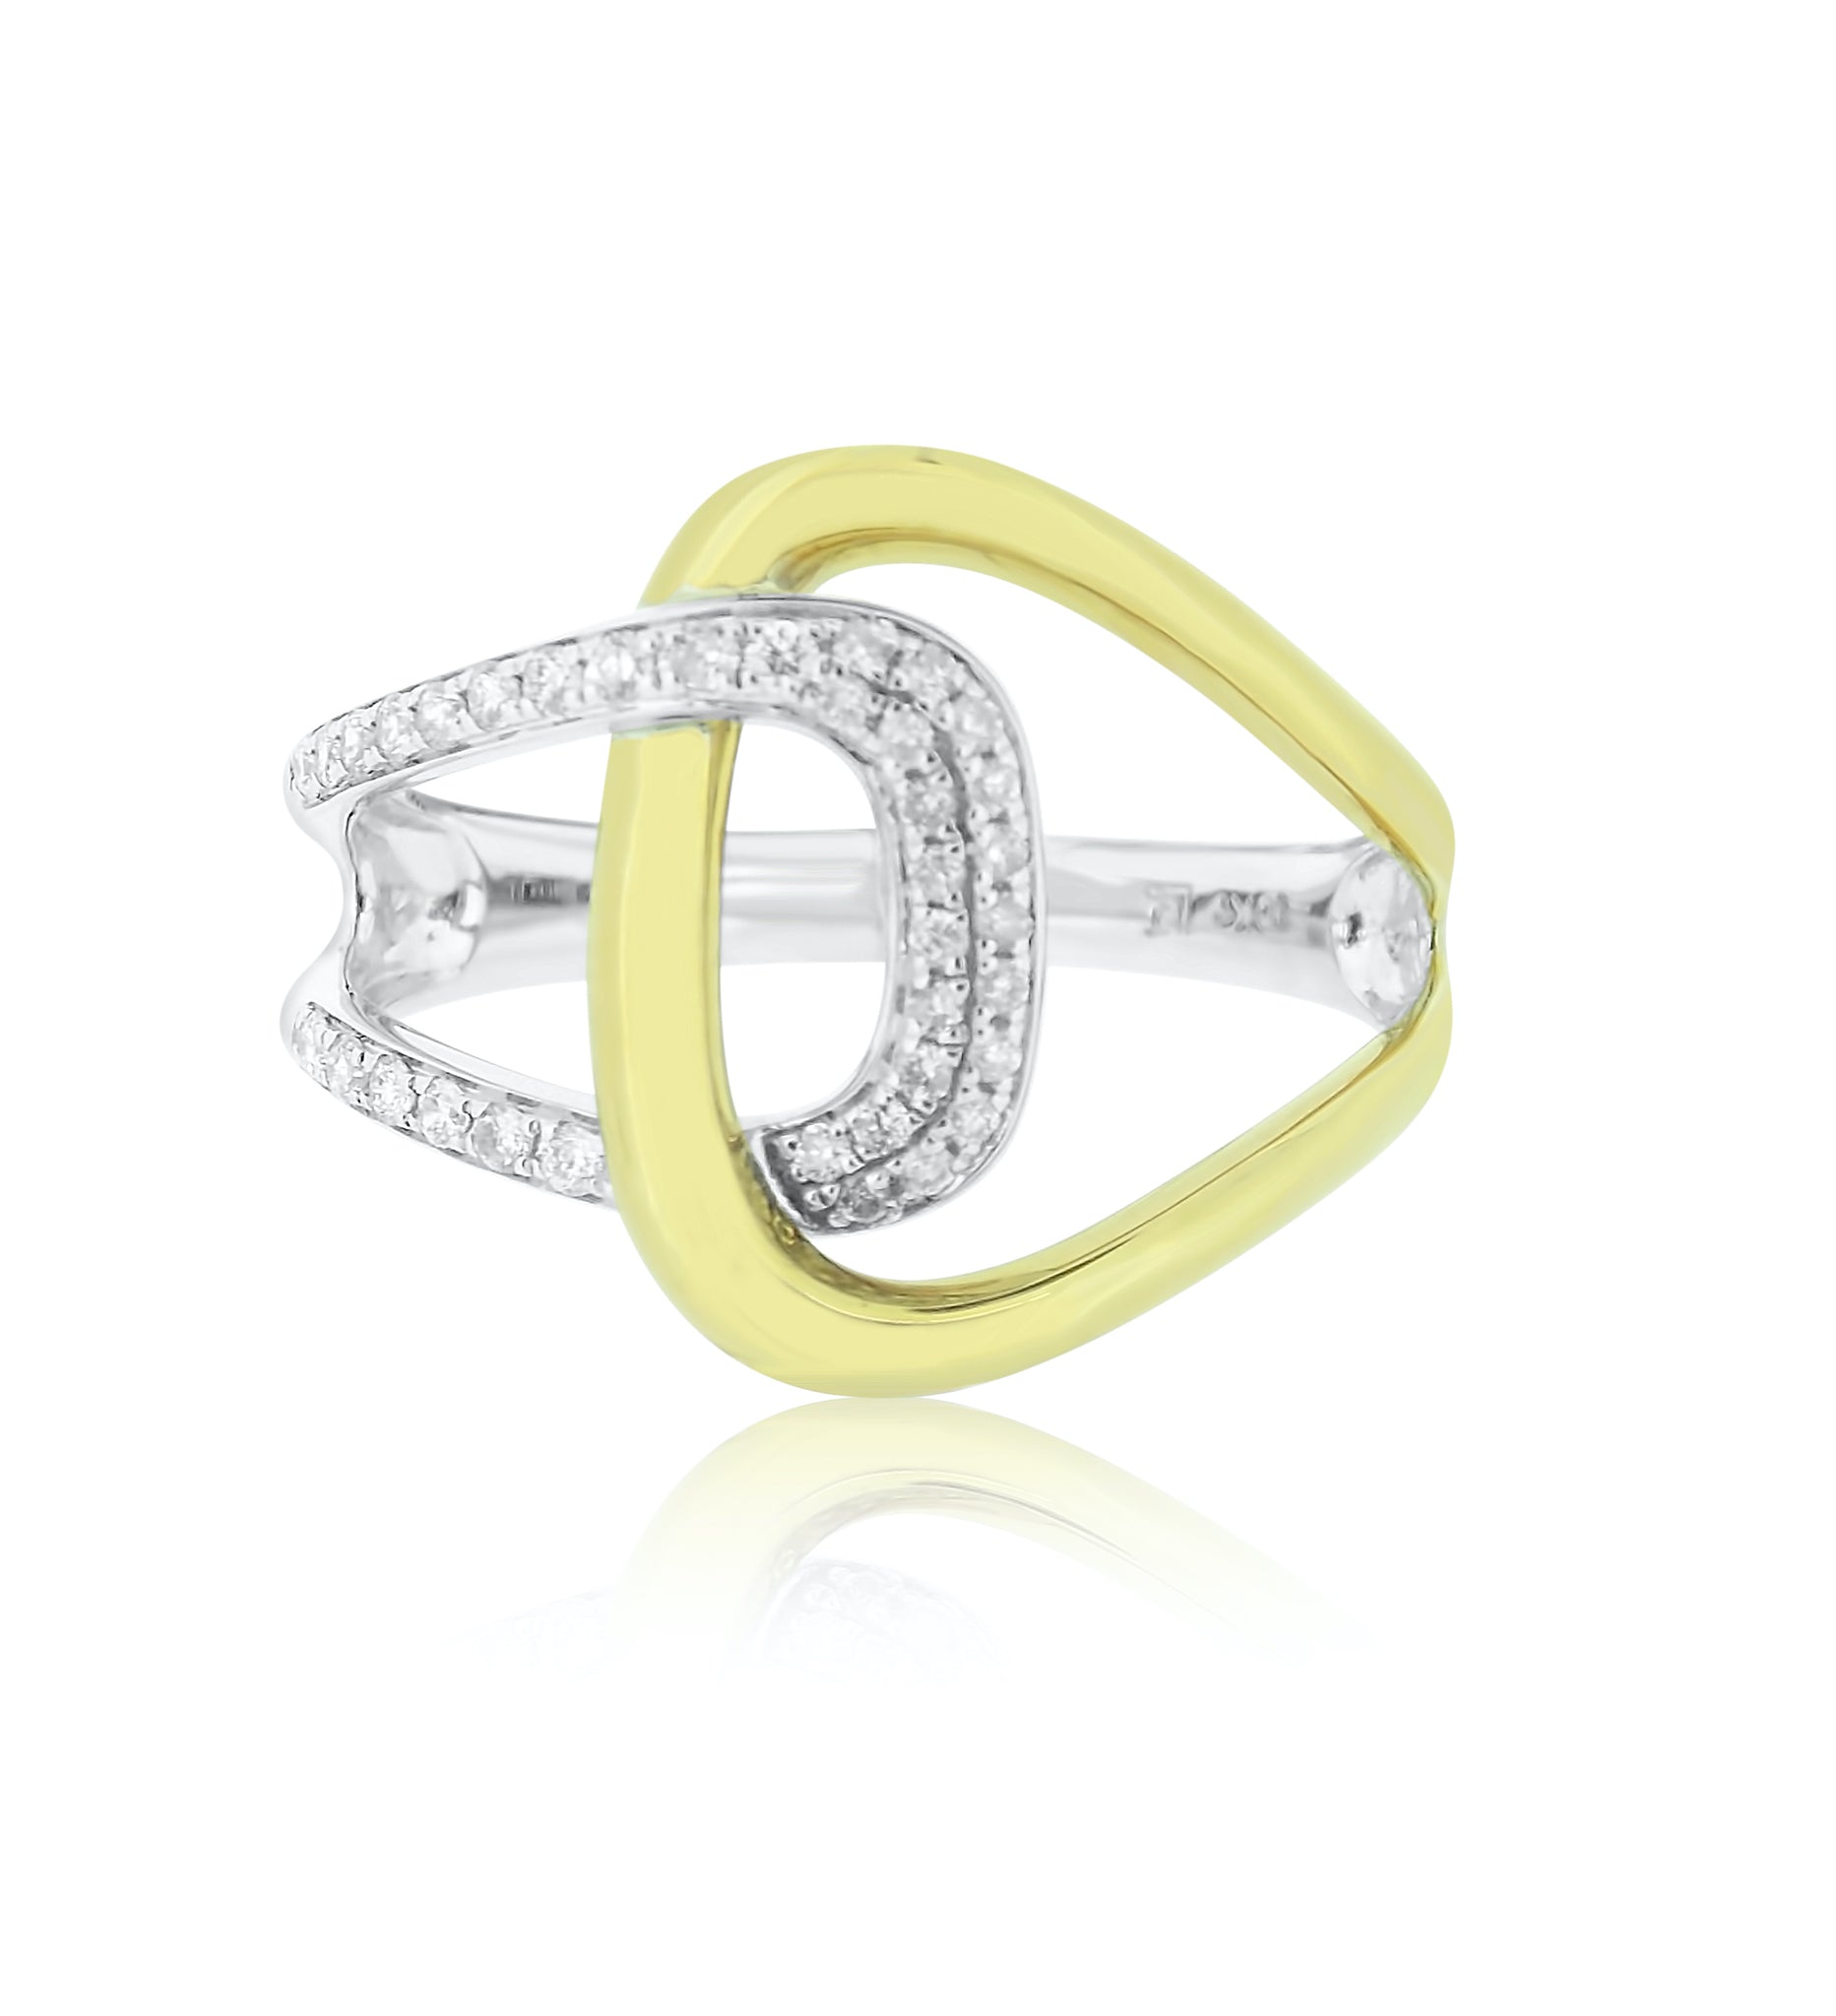 Gold and Diamond Interlocking Ring